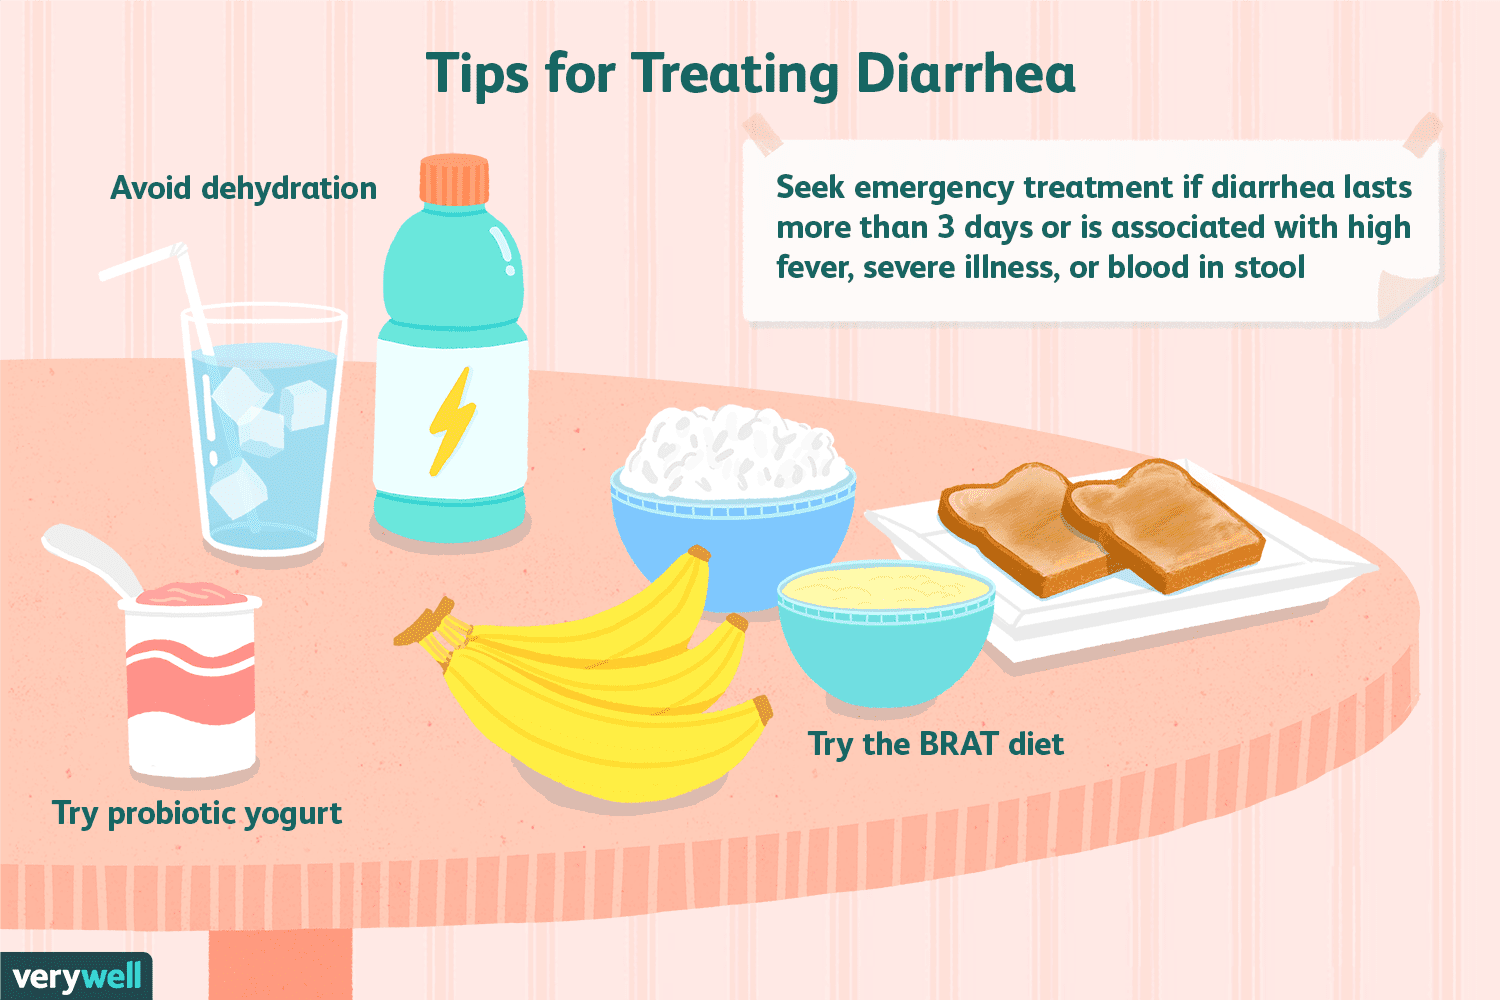 How To Safely Treat Diarrhea